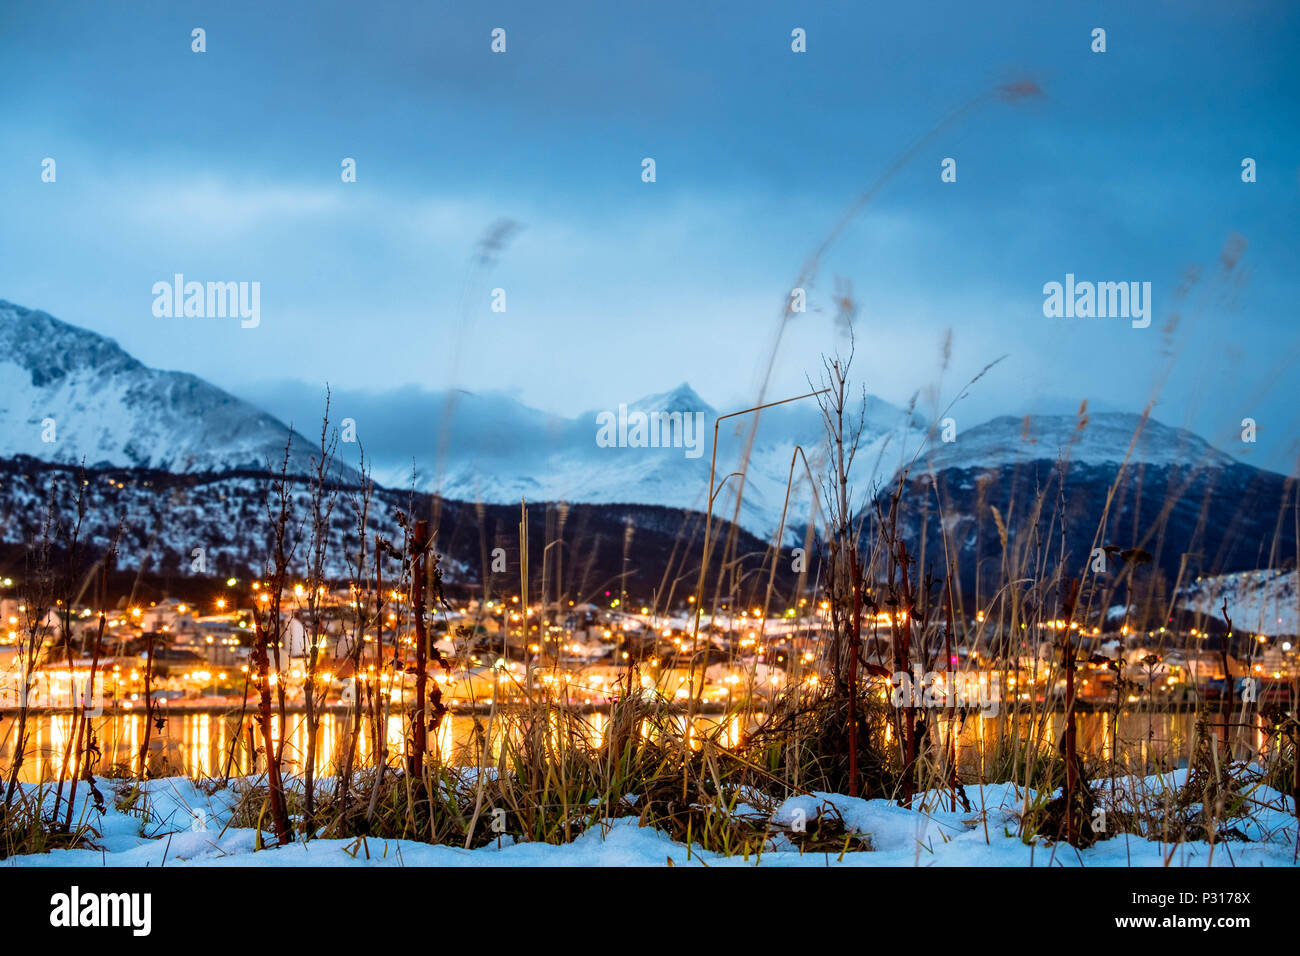 The city lights of Ushuaia are reflected in the water of the closed bay. Winter has come and snow covers the mountains and the valley. Stock Photo